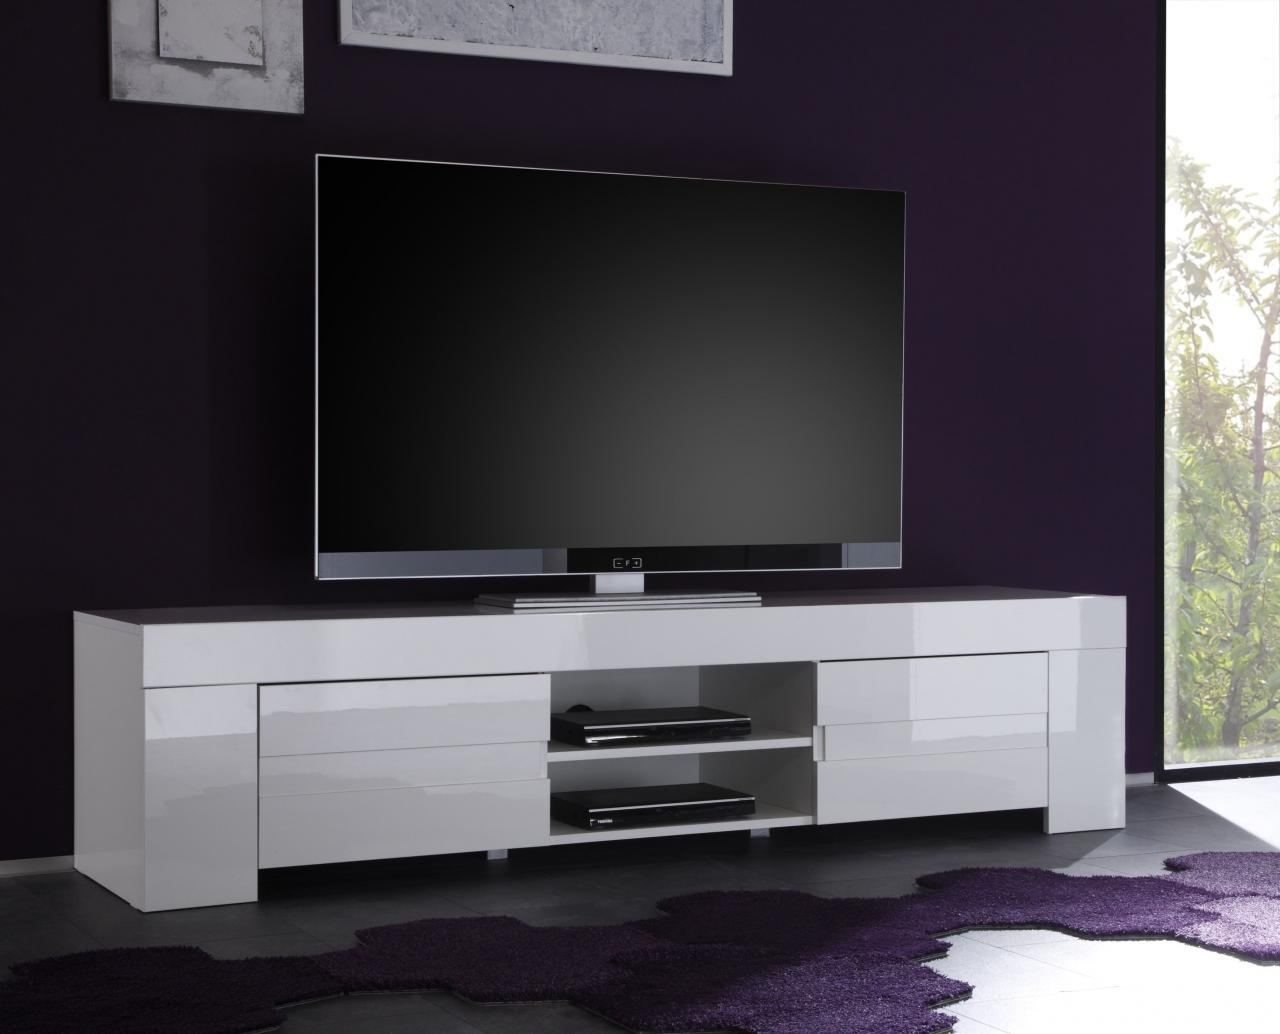 Meuble Tv Blanc Laqu 160 Cm Firstcdiscount # Conforama Meuble Tv Blanc Laque